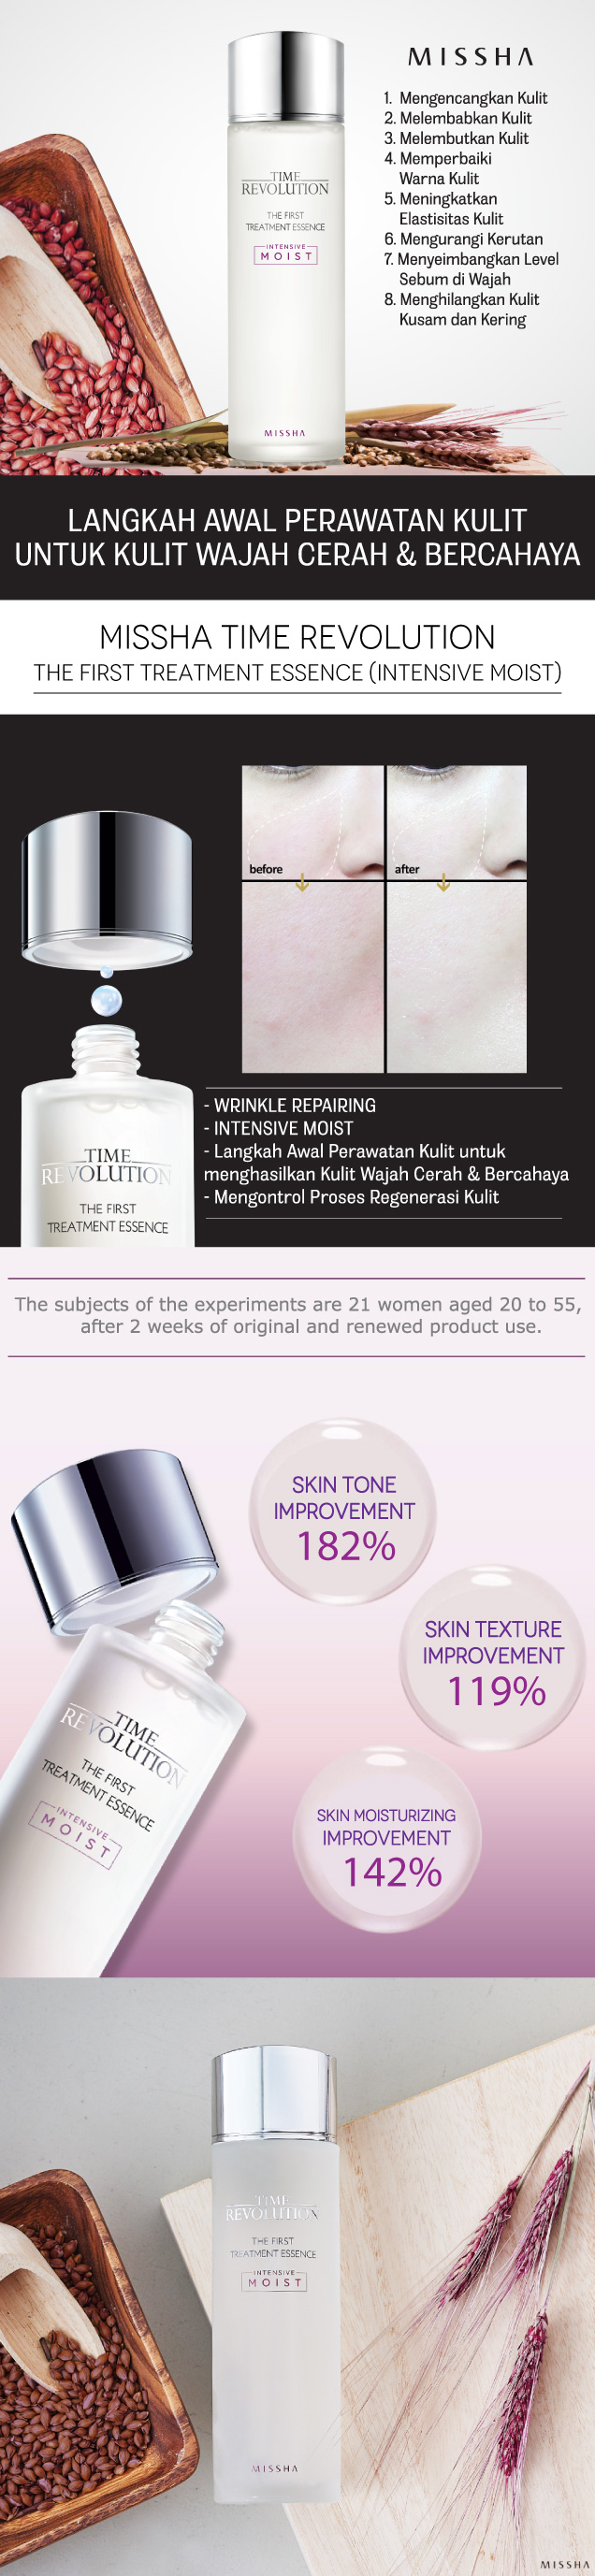 Time Revolution First Treatment Essence Deskripsi